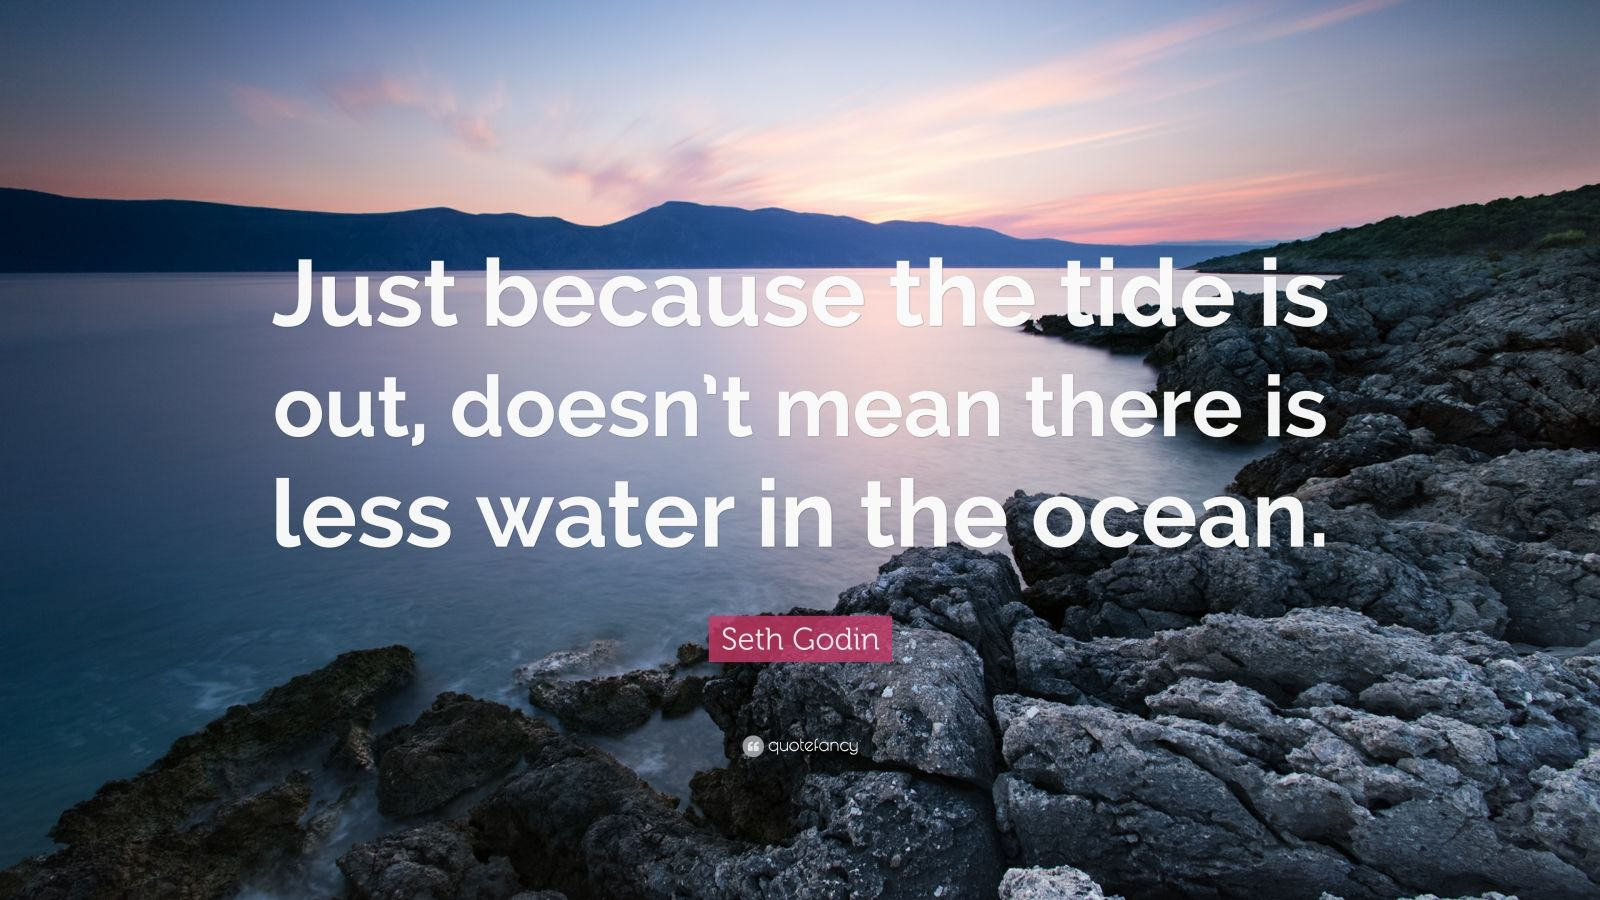 """Seth Godin Quote: """"Just because the tide is out, doesn't mean there is less water in the ocean."""""""